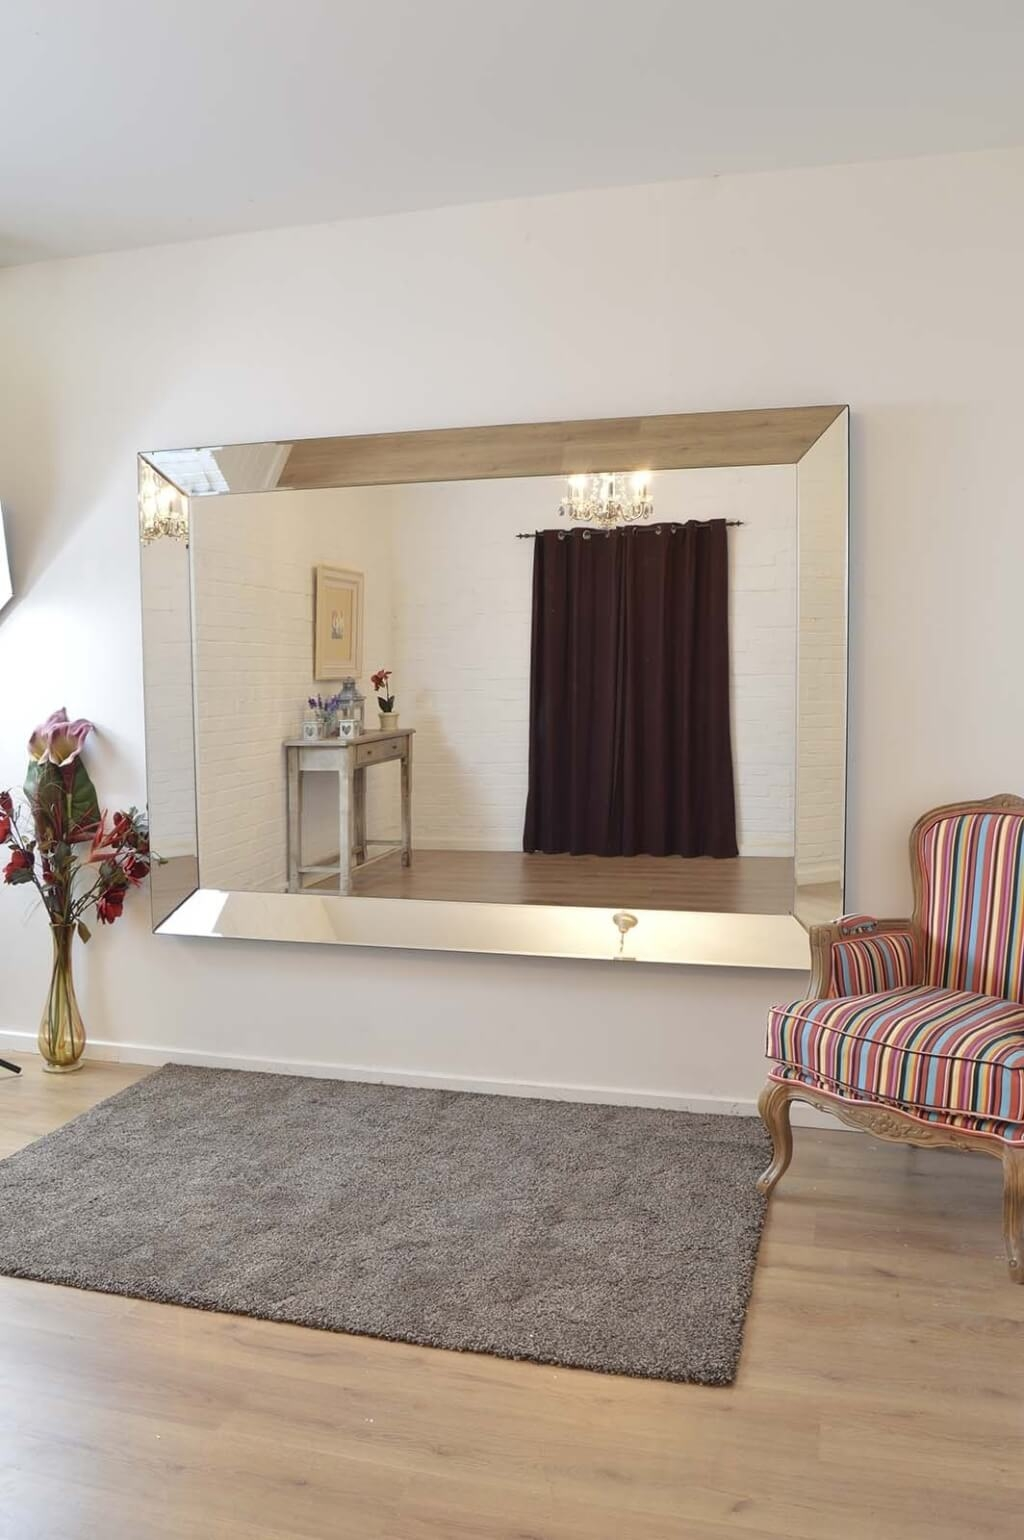 Home Decoration Astounding Frameless Antique Mirrors With With Regard To Antique Frameless Mirrors (Image 8 of 15)